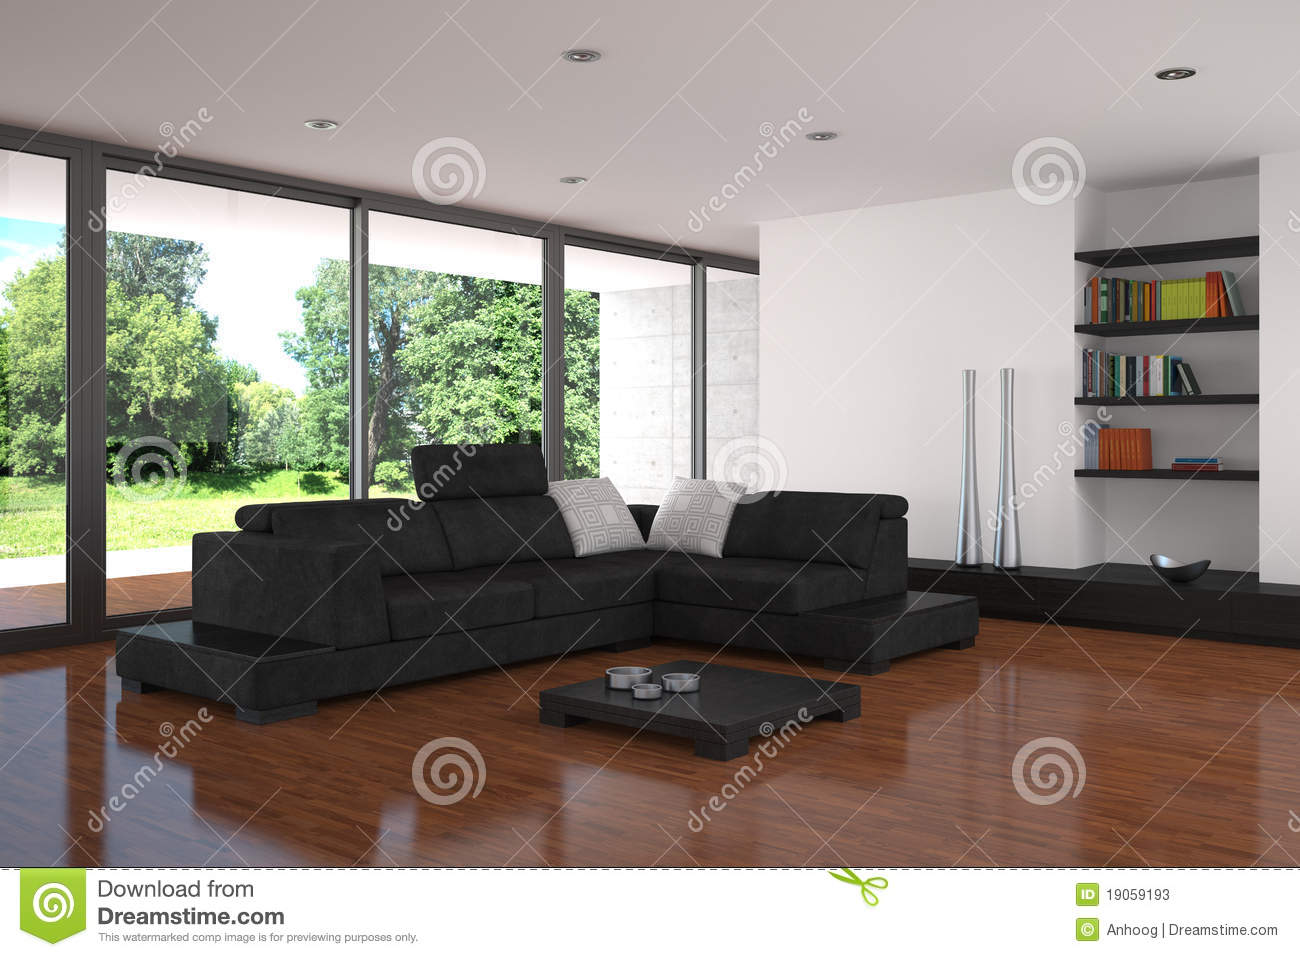 salle de s jour moderne avec l 39 tage de parquet illustration stock illustration du minimalisme. Black Bedroom Furniture Sets. Home Design Ideas